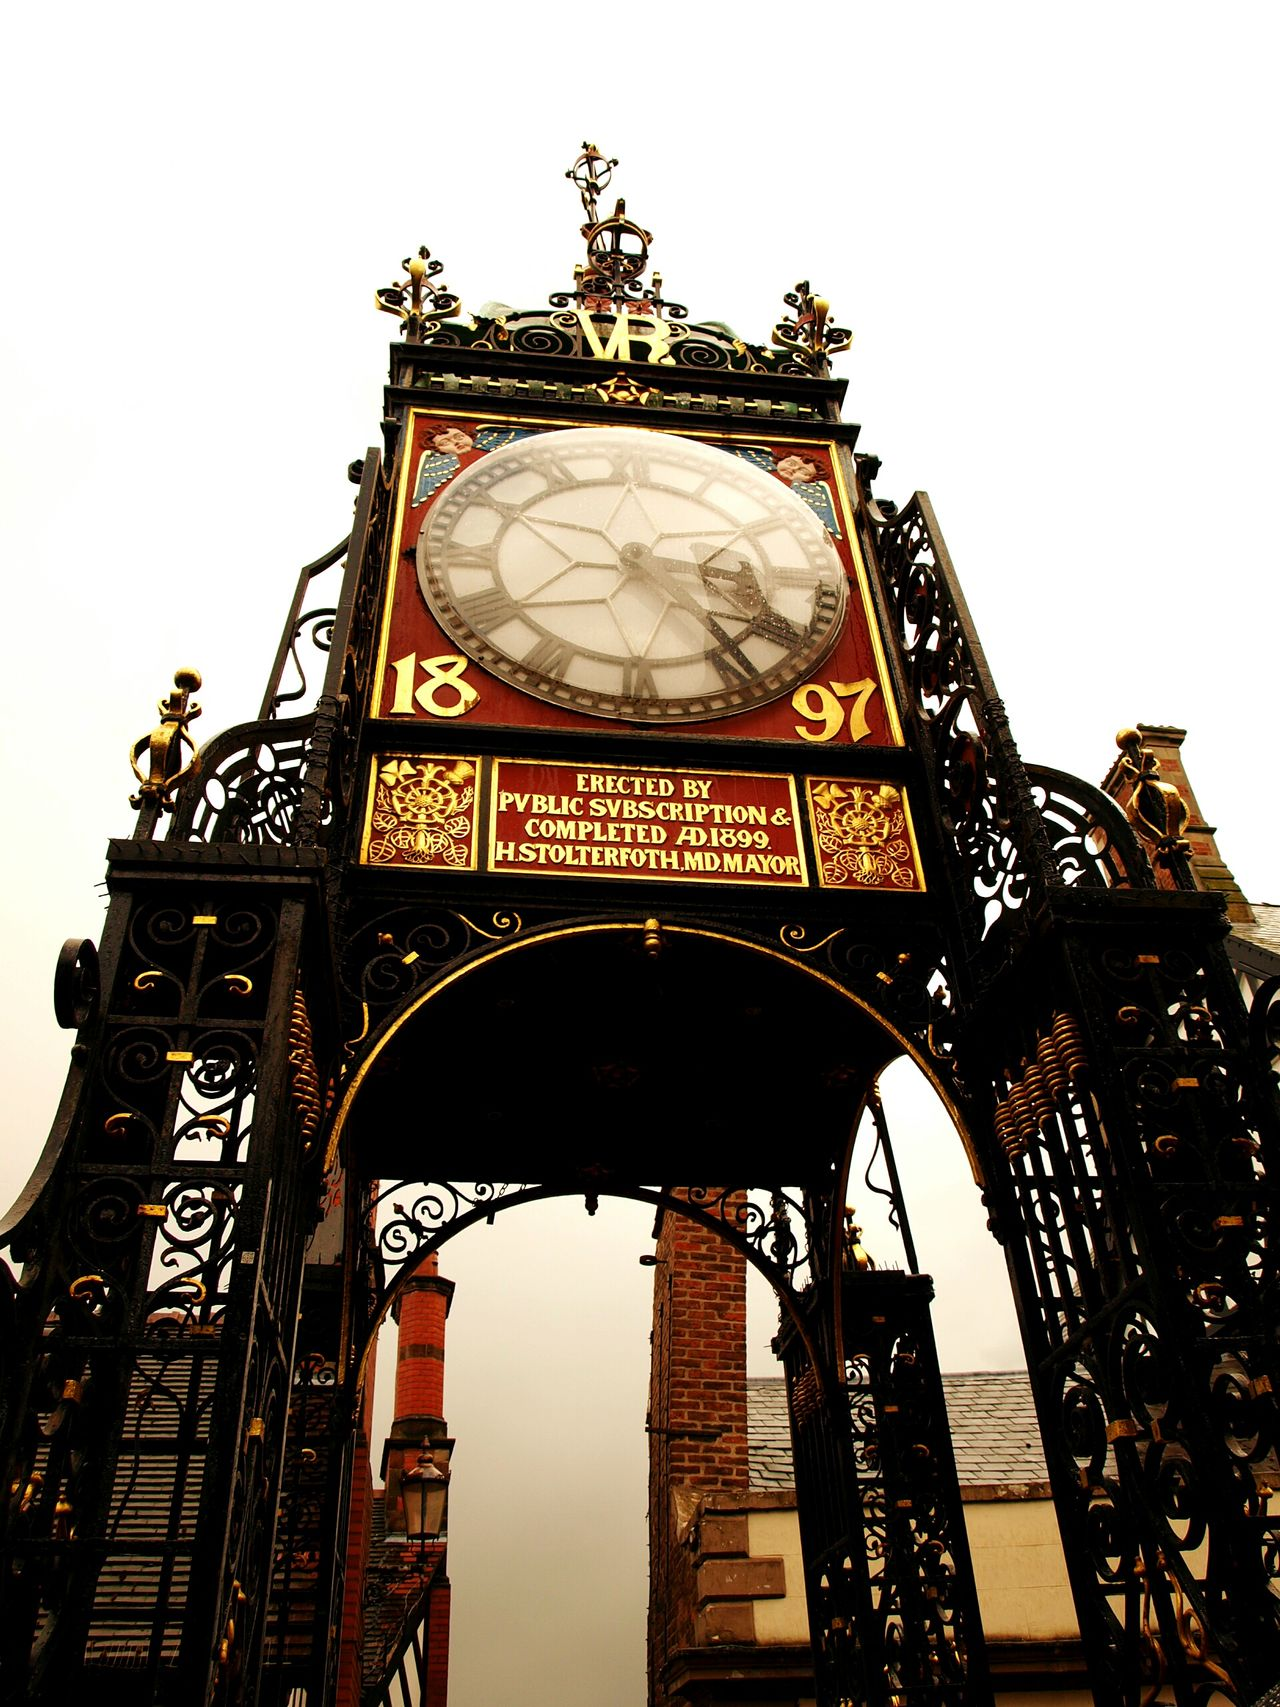 Clock Clock Tower Gold And Red Clock Face Minute Hand Architecture Victorian Architecture Victorian Tudors Chesterfield Architecture City Rainy Days Grey Sky England Inglaterra Reino Unido Torre Del Reloj Reloj Monumental Monument 1897 Vintage Historic